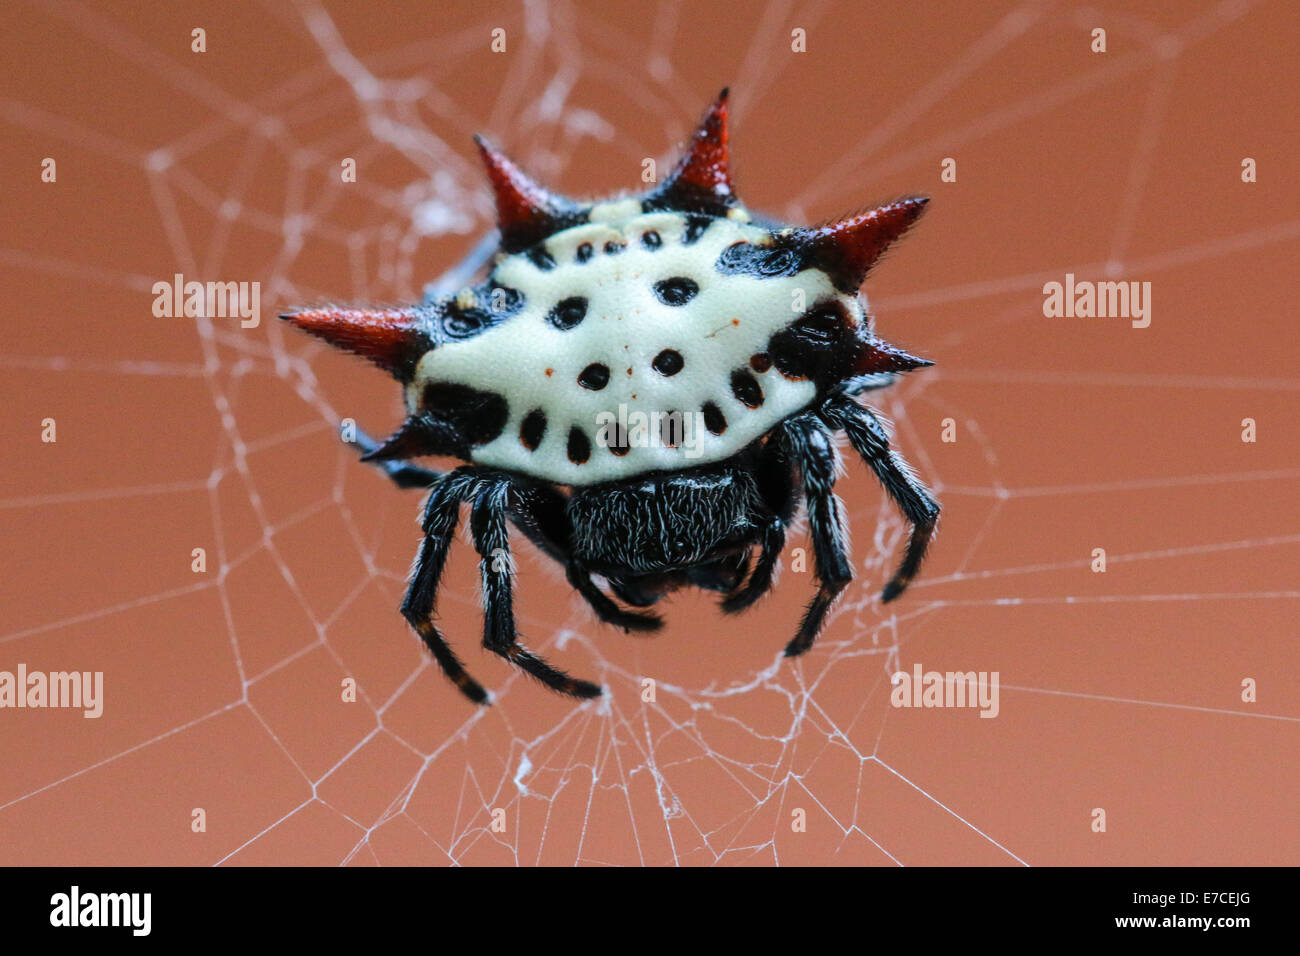 This is a spiny orb weaver, or scientifically called Gasteracantha, found in Myrtle Beach, South Carolina. - Stock Image